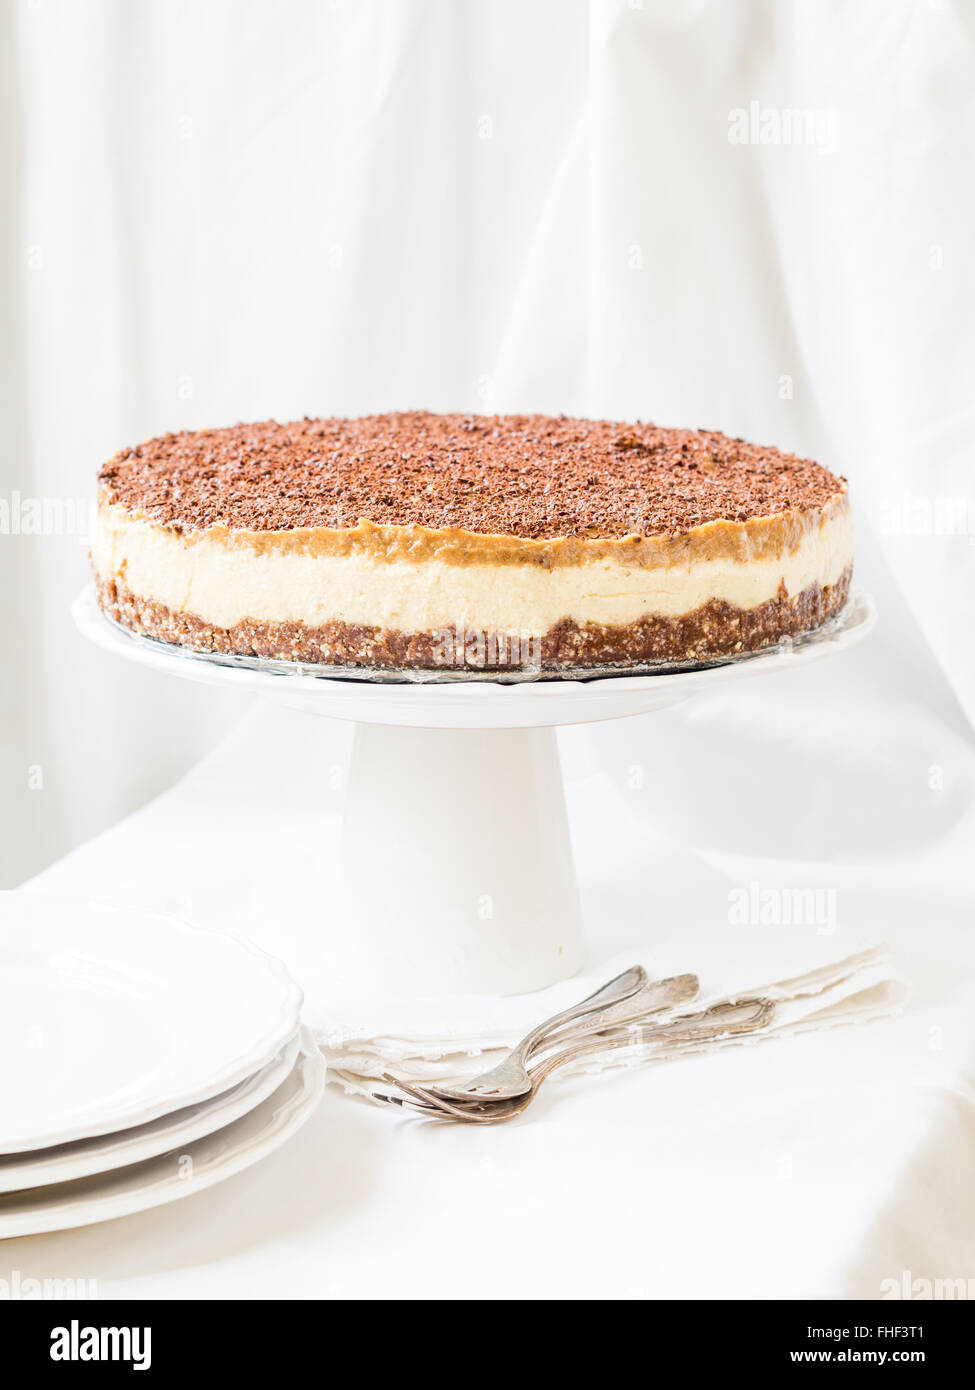 Whole vegan millet cheesecake with date caramel on a cleat background. - Stock Image